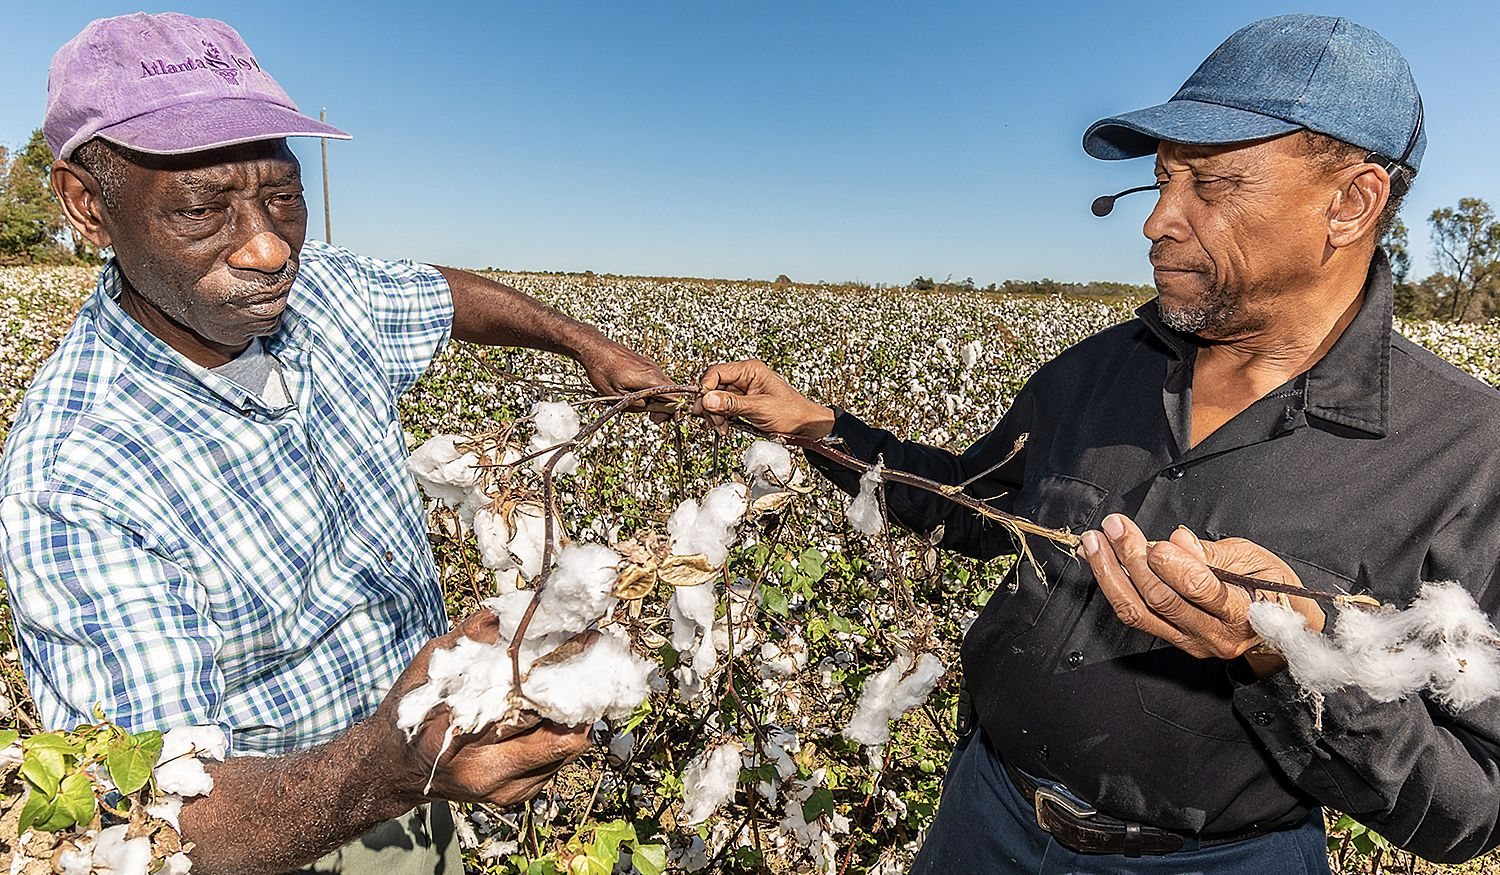 Ricky Waters (left) FVSU Extension program assistant for Macon County, inspects cotton crop damage with Willie Joe Daniels on his 25 acre farm near Oglethorpe.